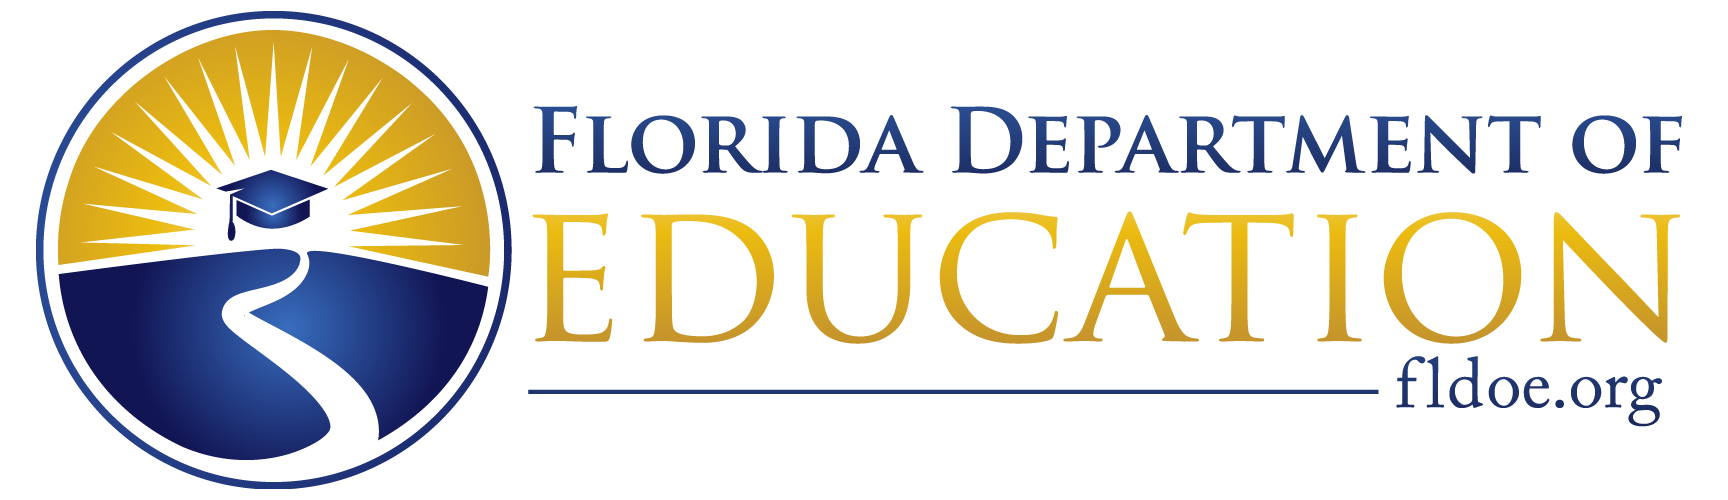 Florida Department of Education, Division of Public Schools